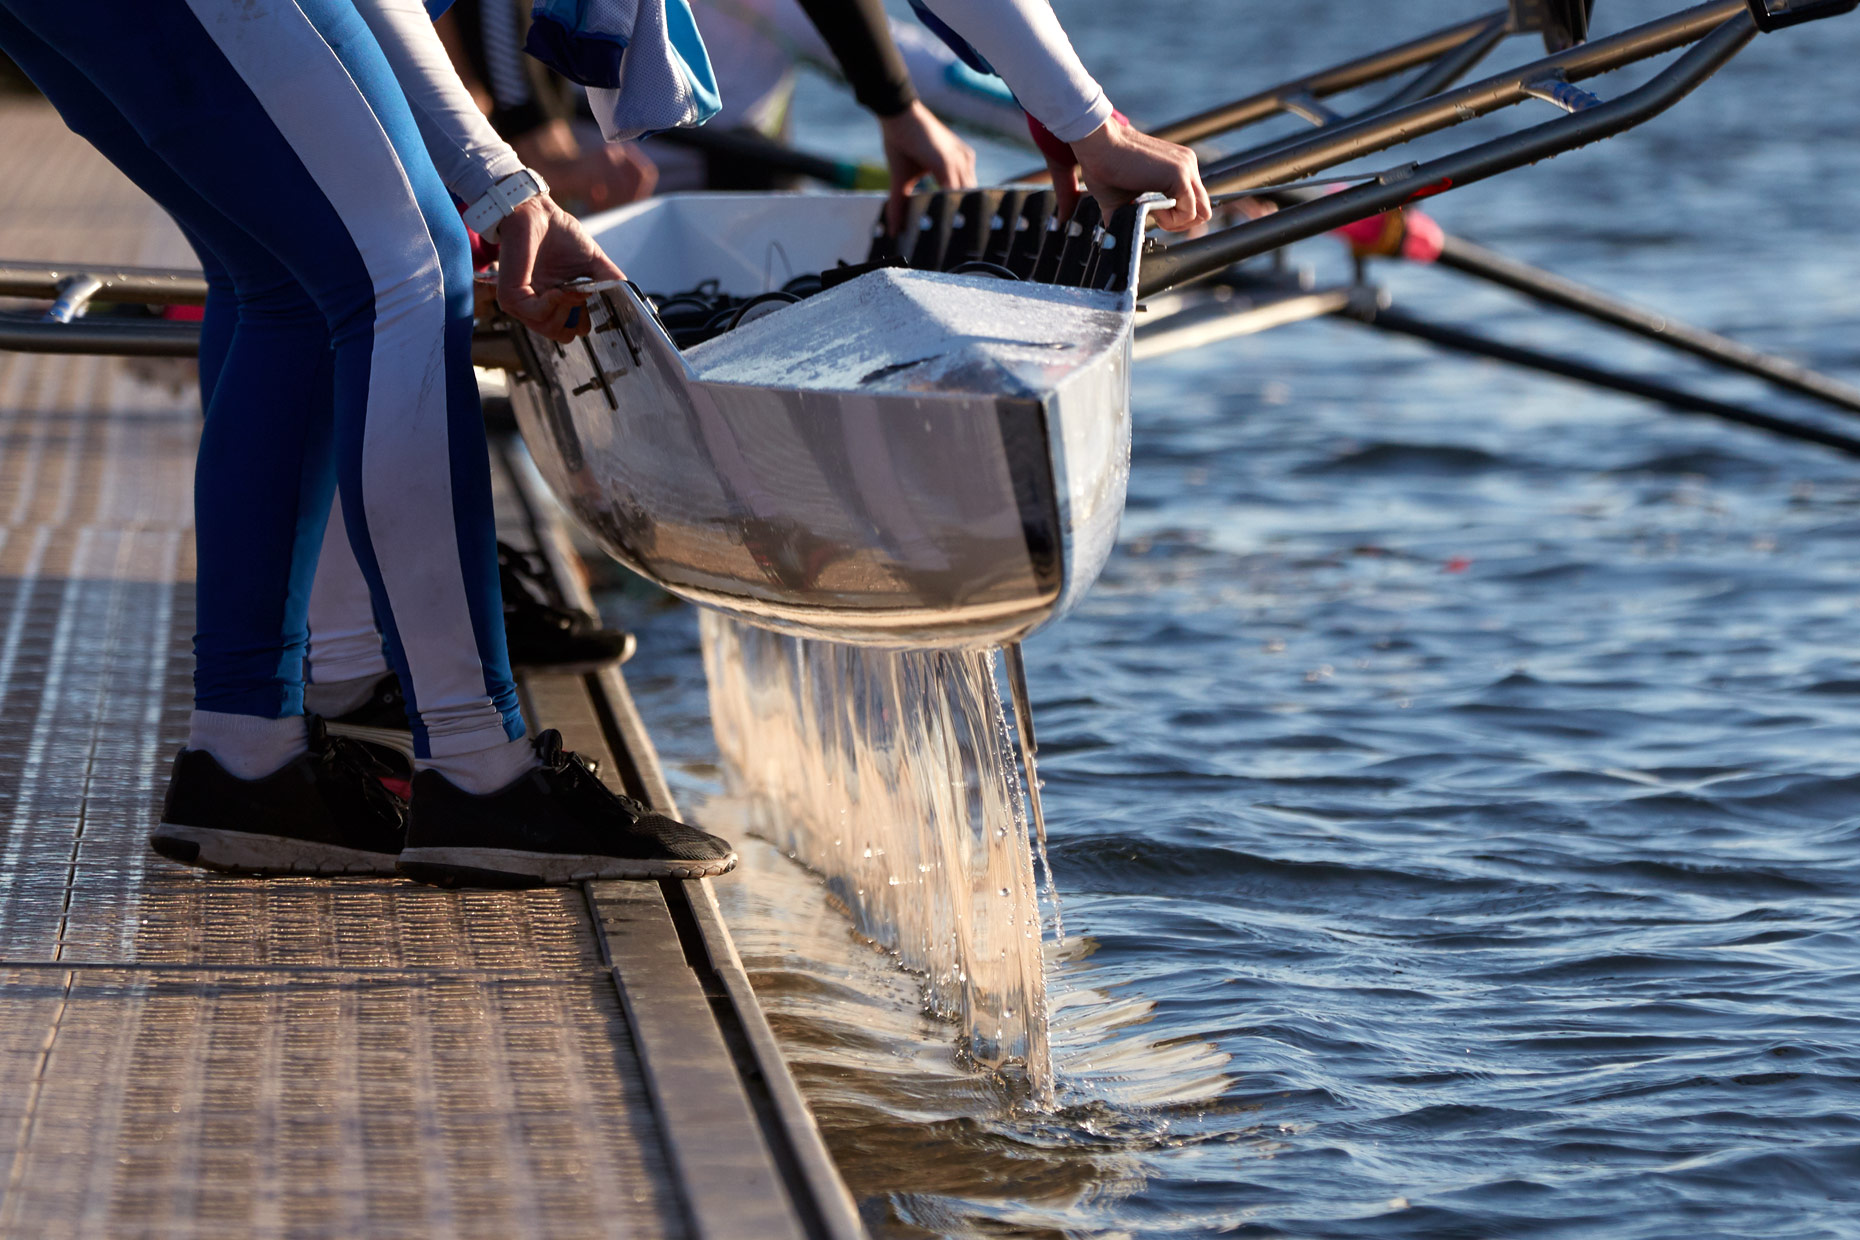 BMC_ROWING1